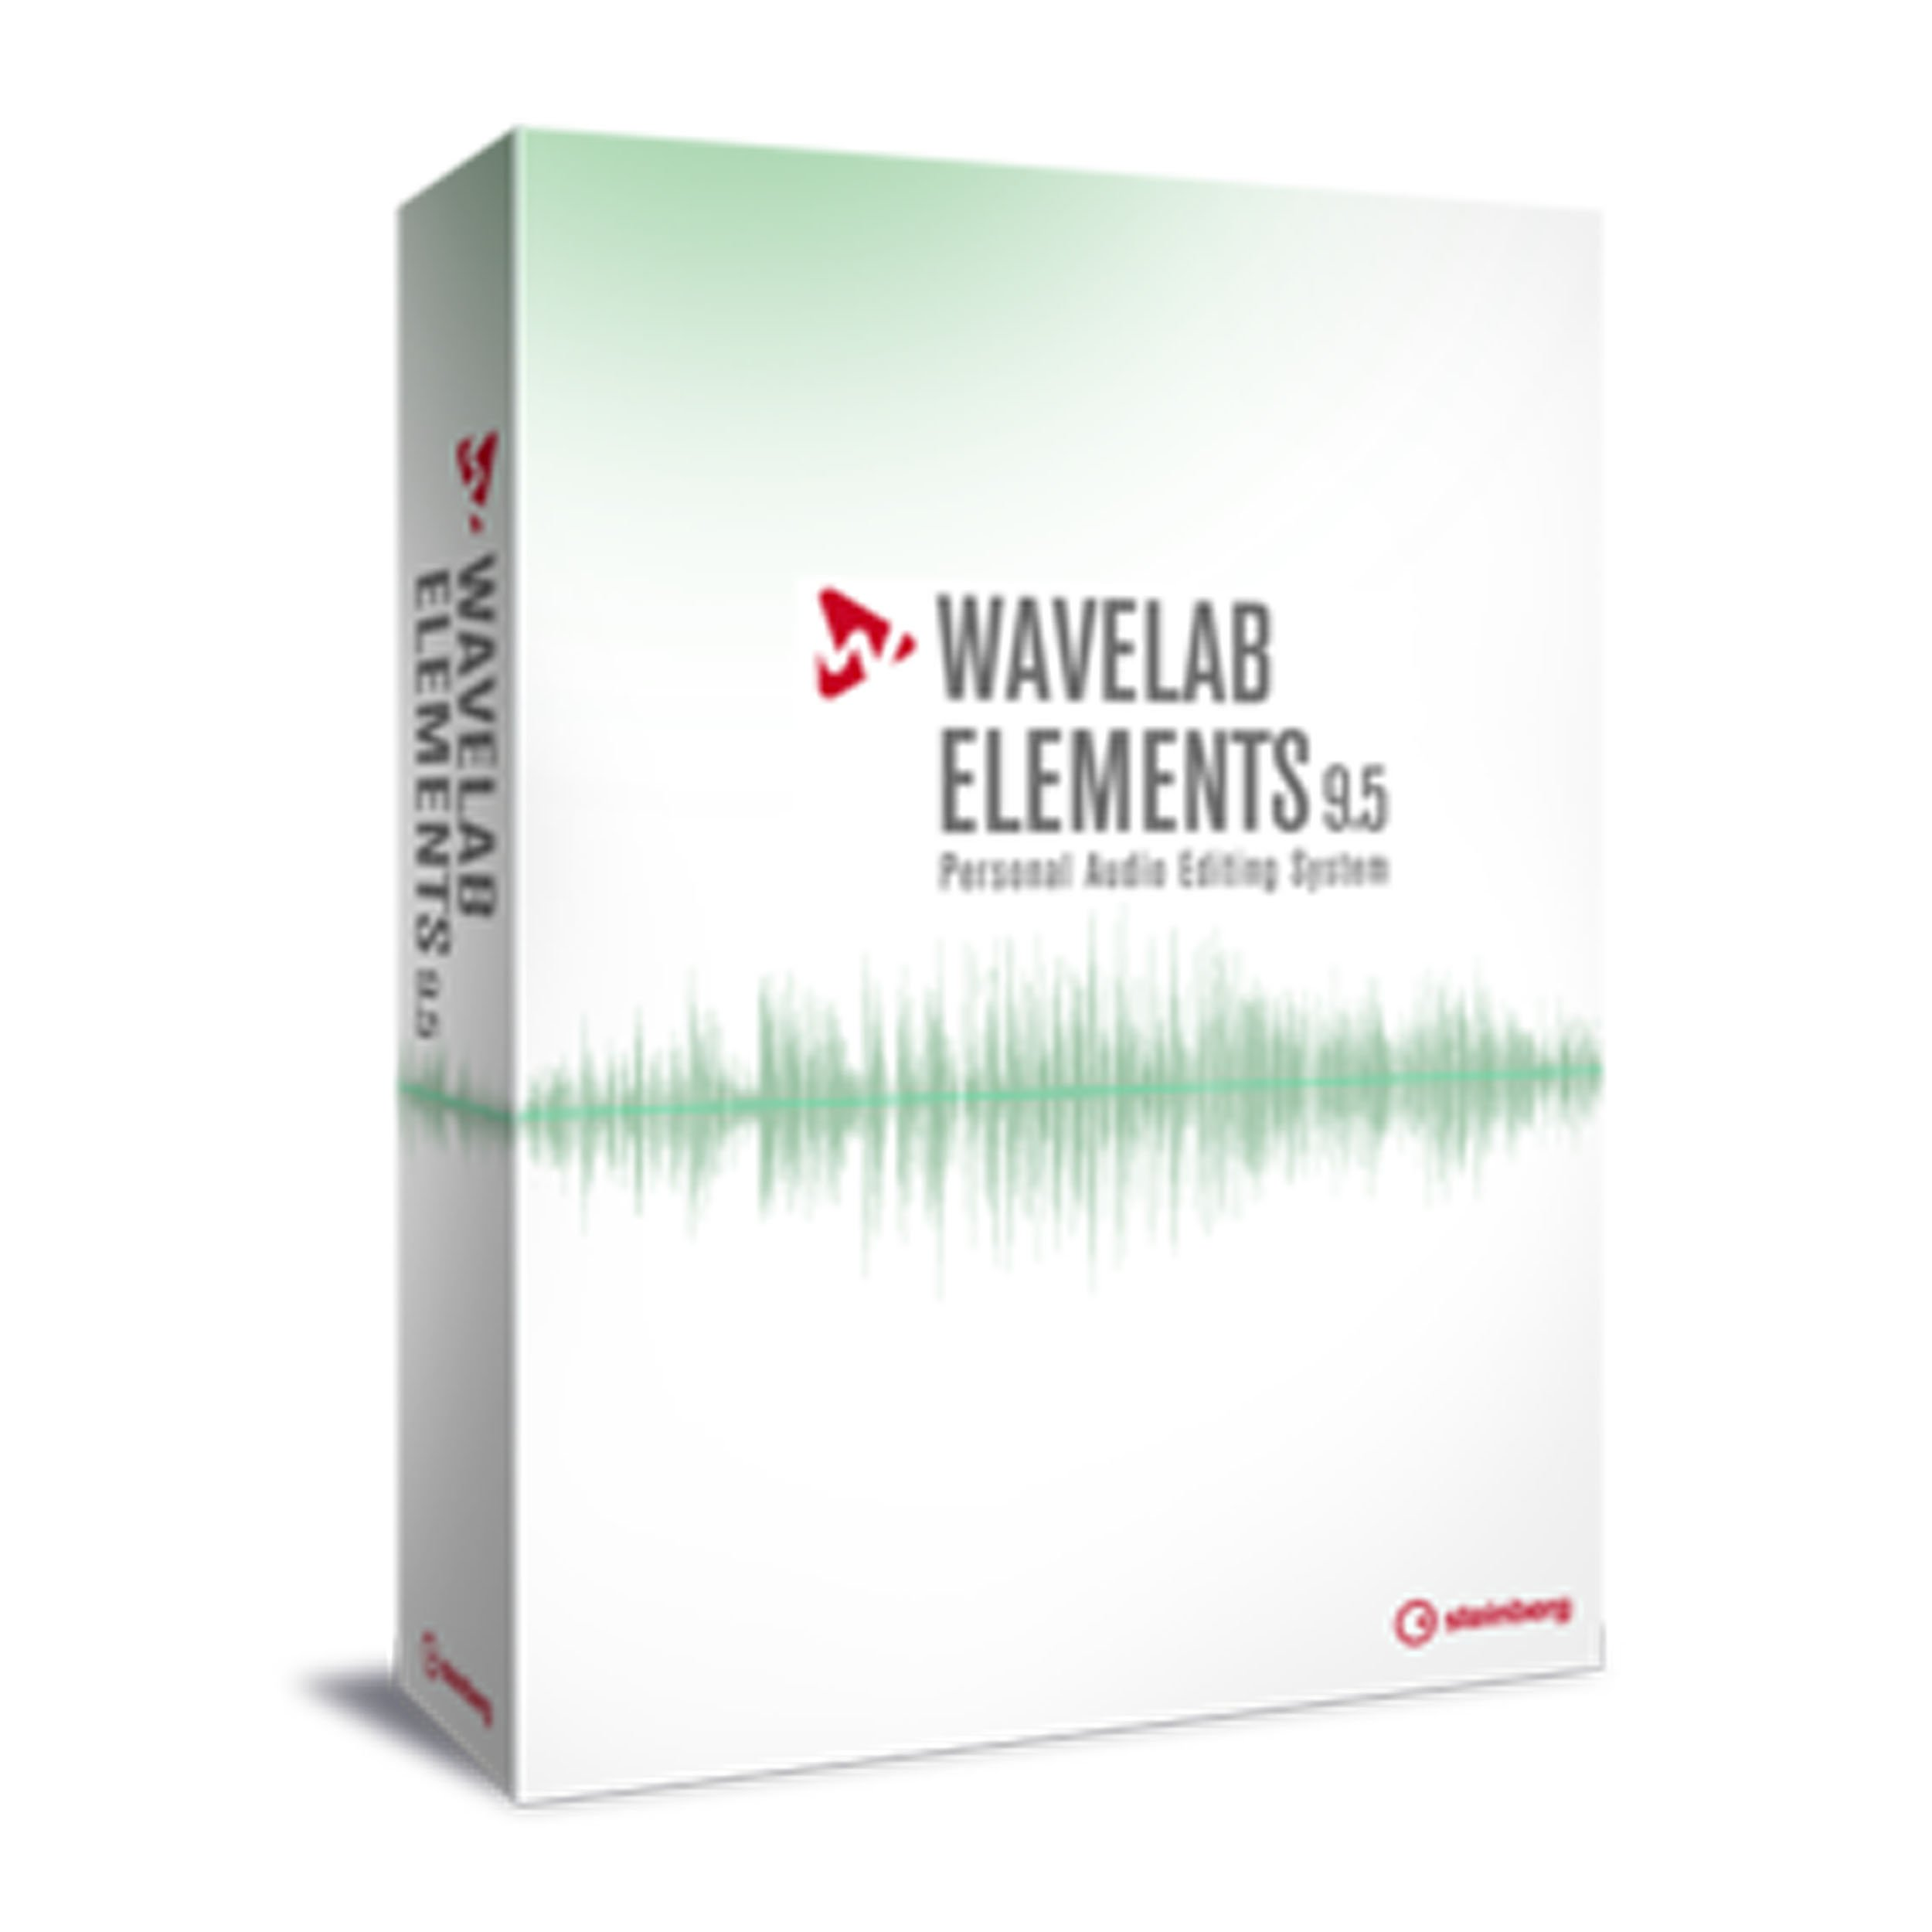 Steinberg Wavelab Elements 9.5 Personal Audio Editing System